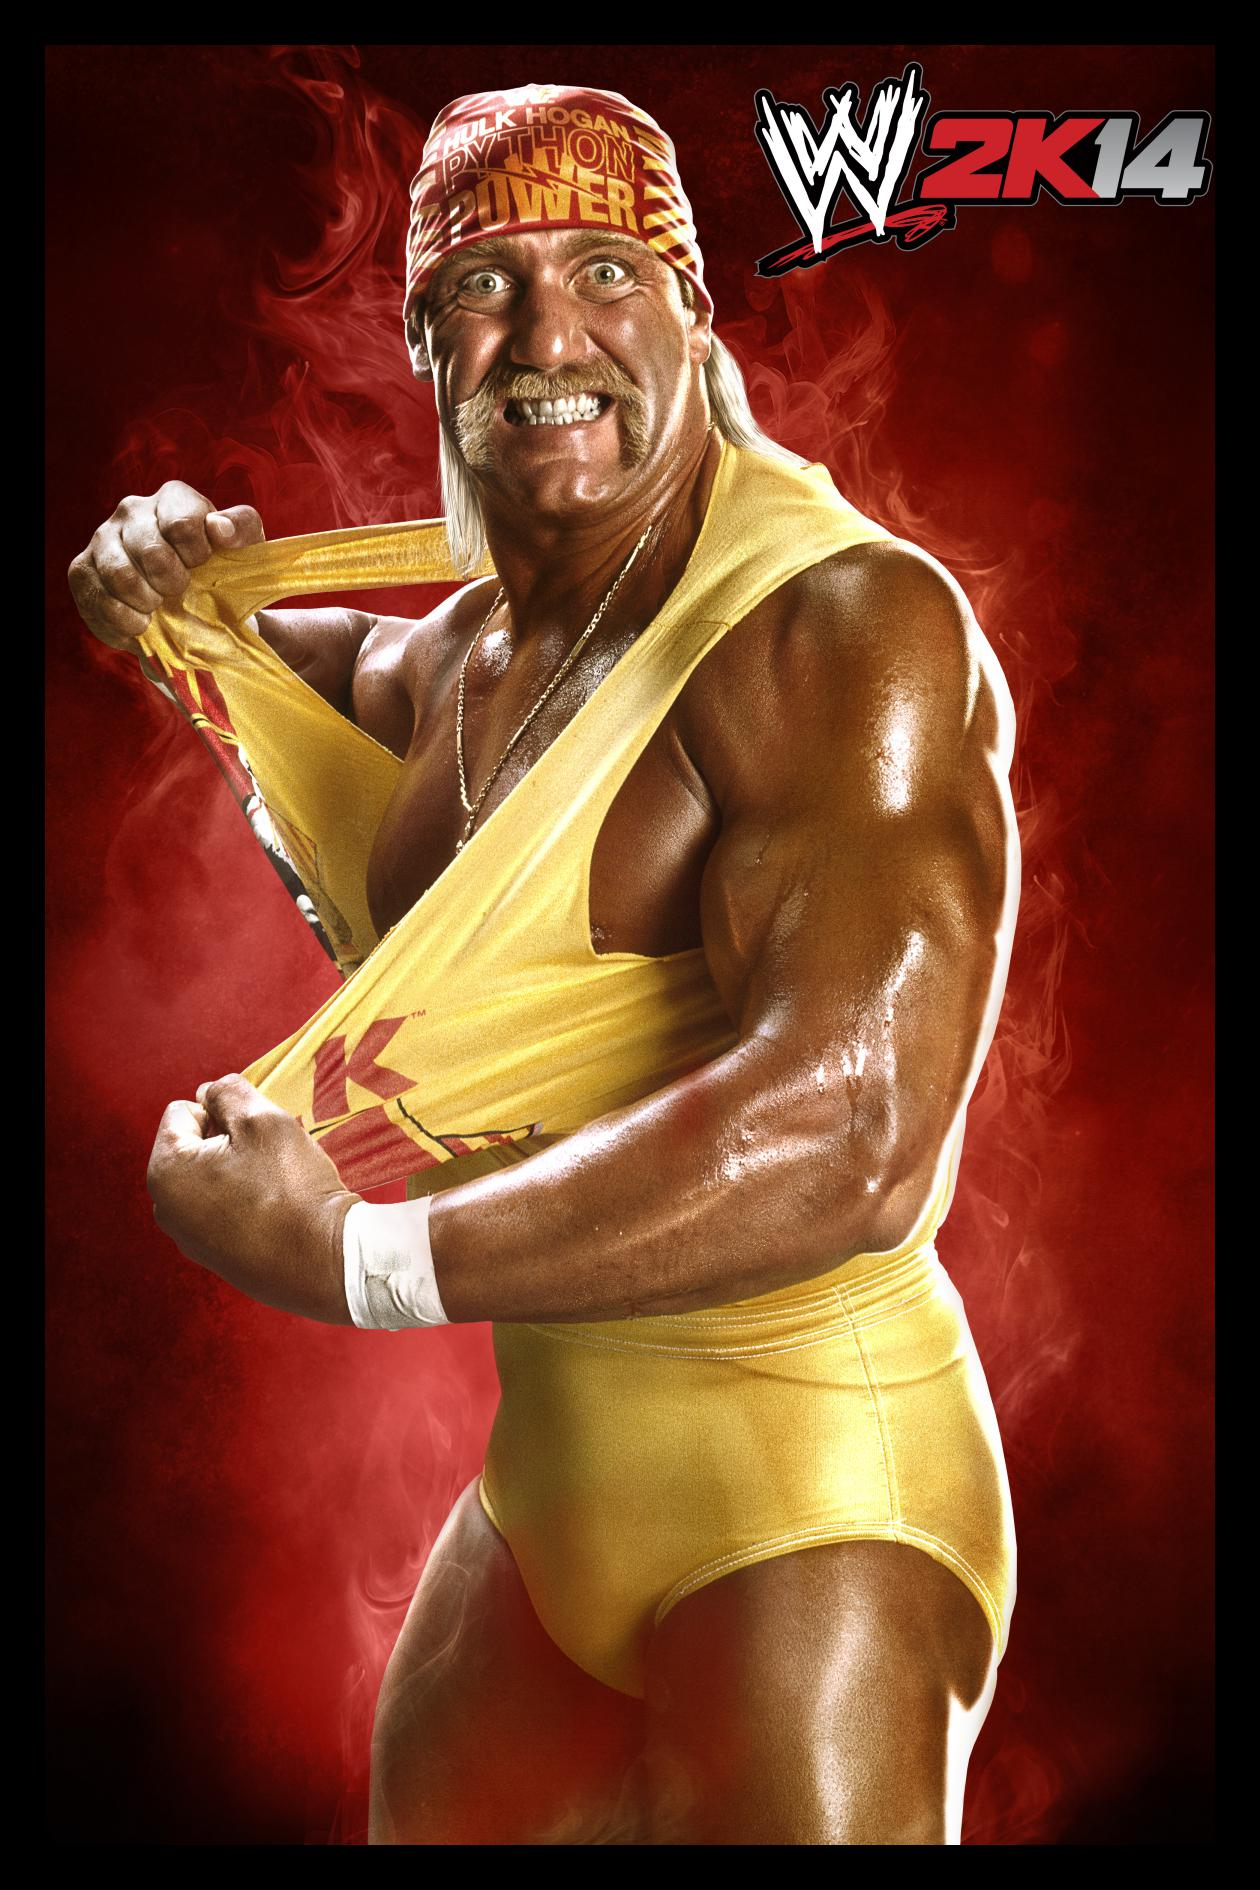 Hogan Hulk Wwe 2k14 39s Full Character Roster Revealed Get The List